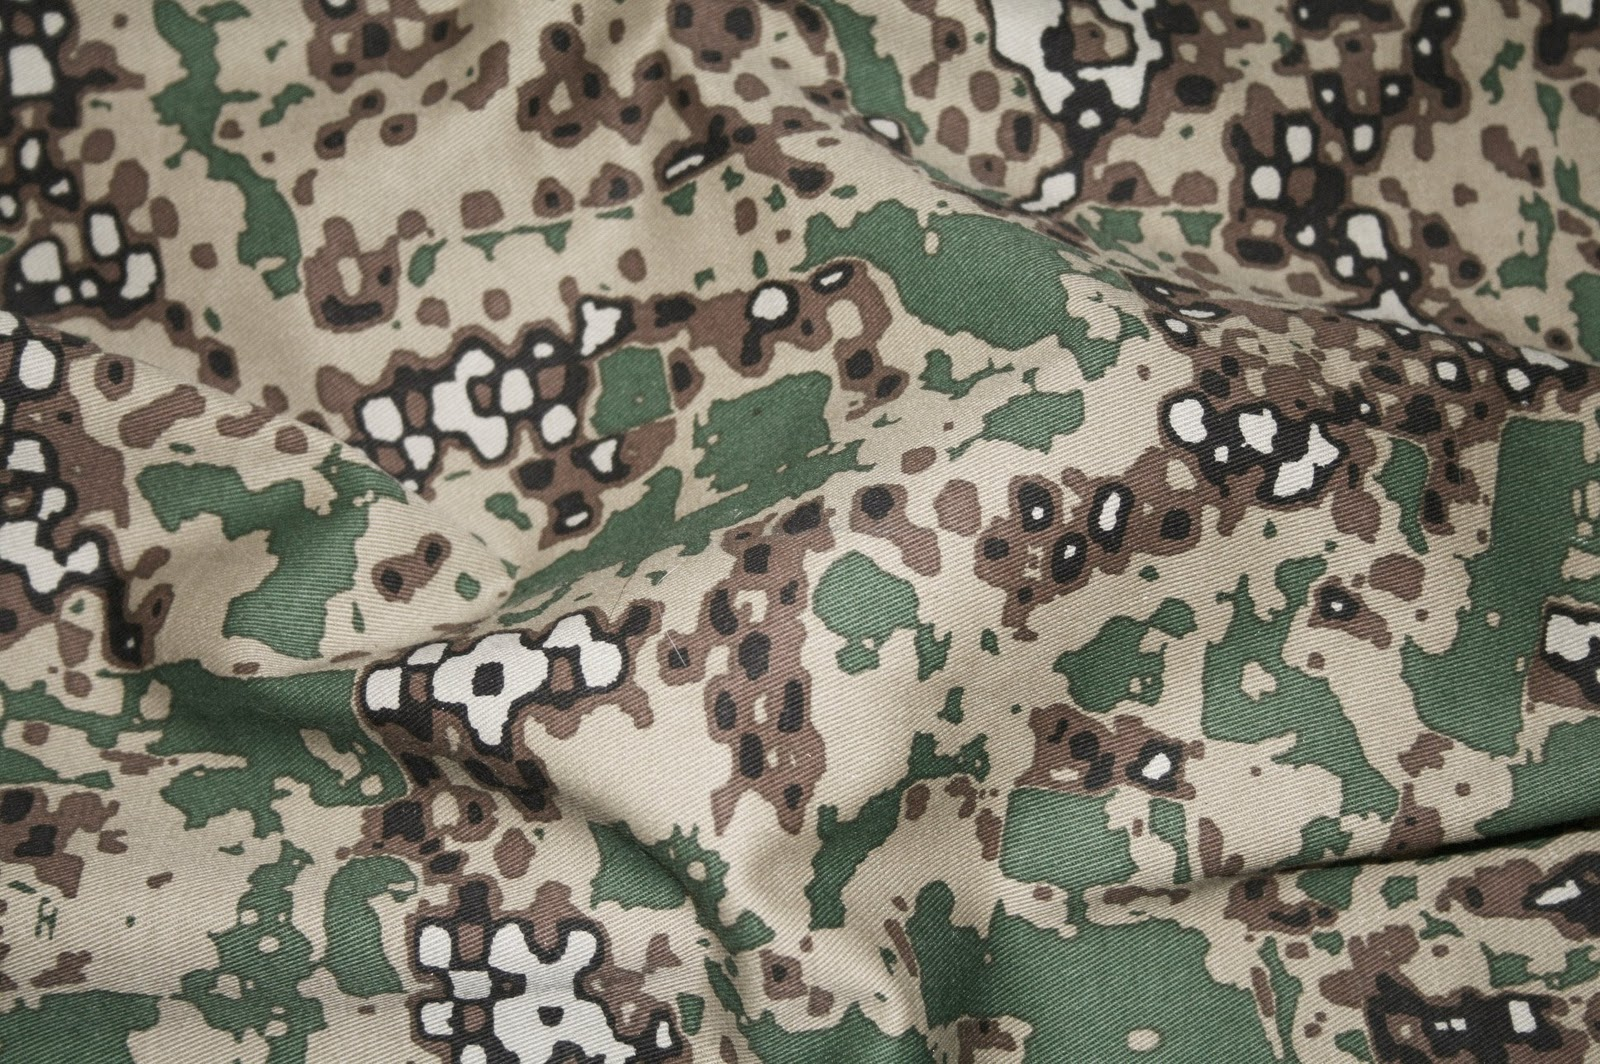 New Camo Pattern for the Army? | Military Gear News